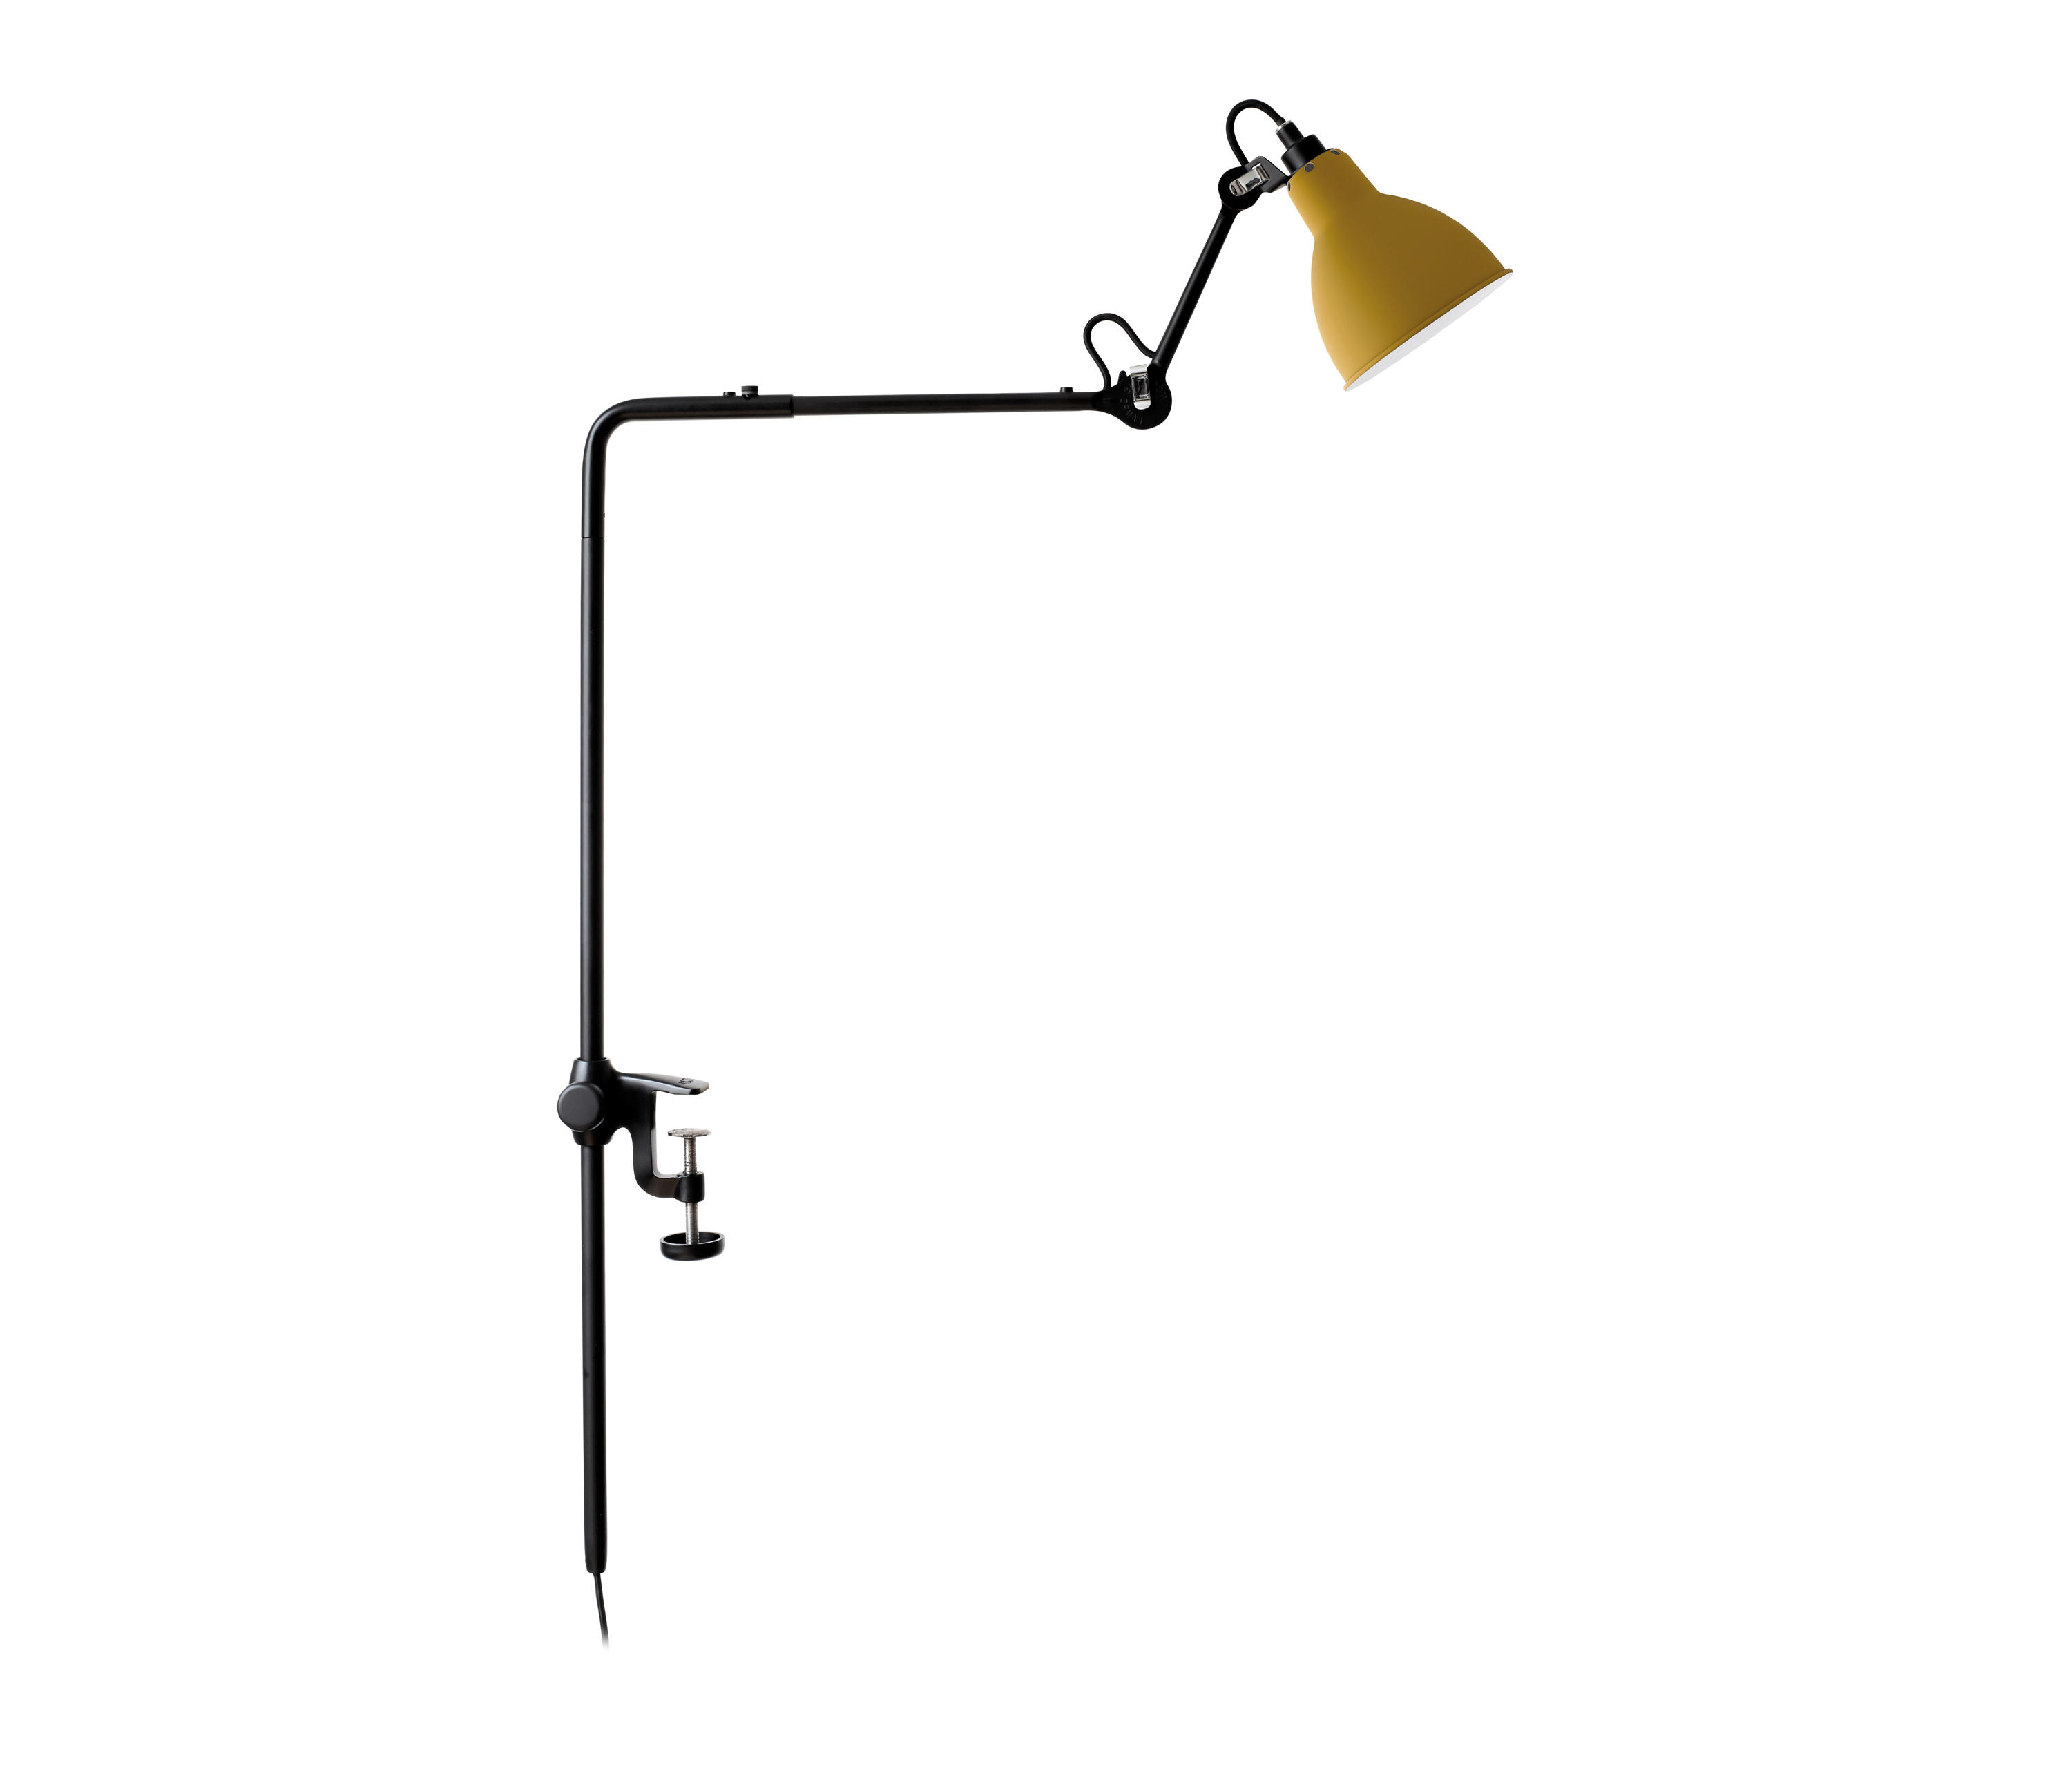 Dcw Lampade Lampe Gras N226 Yellow Lampade Parete Dcw éditions